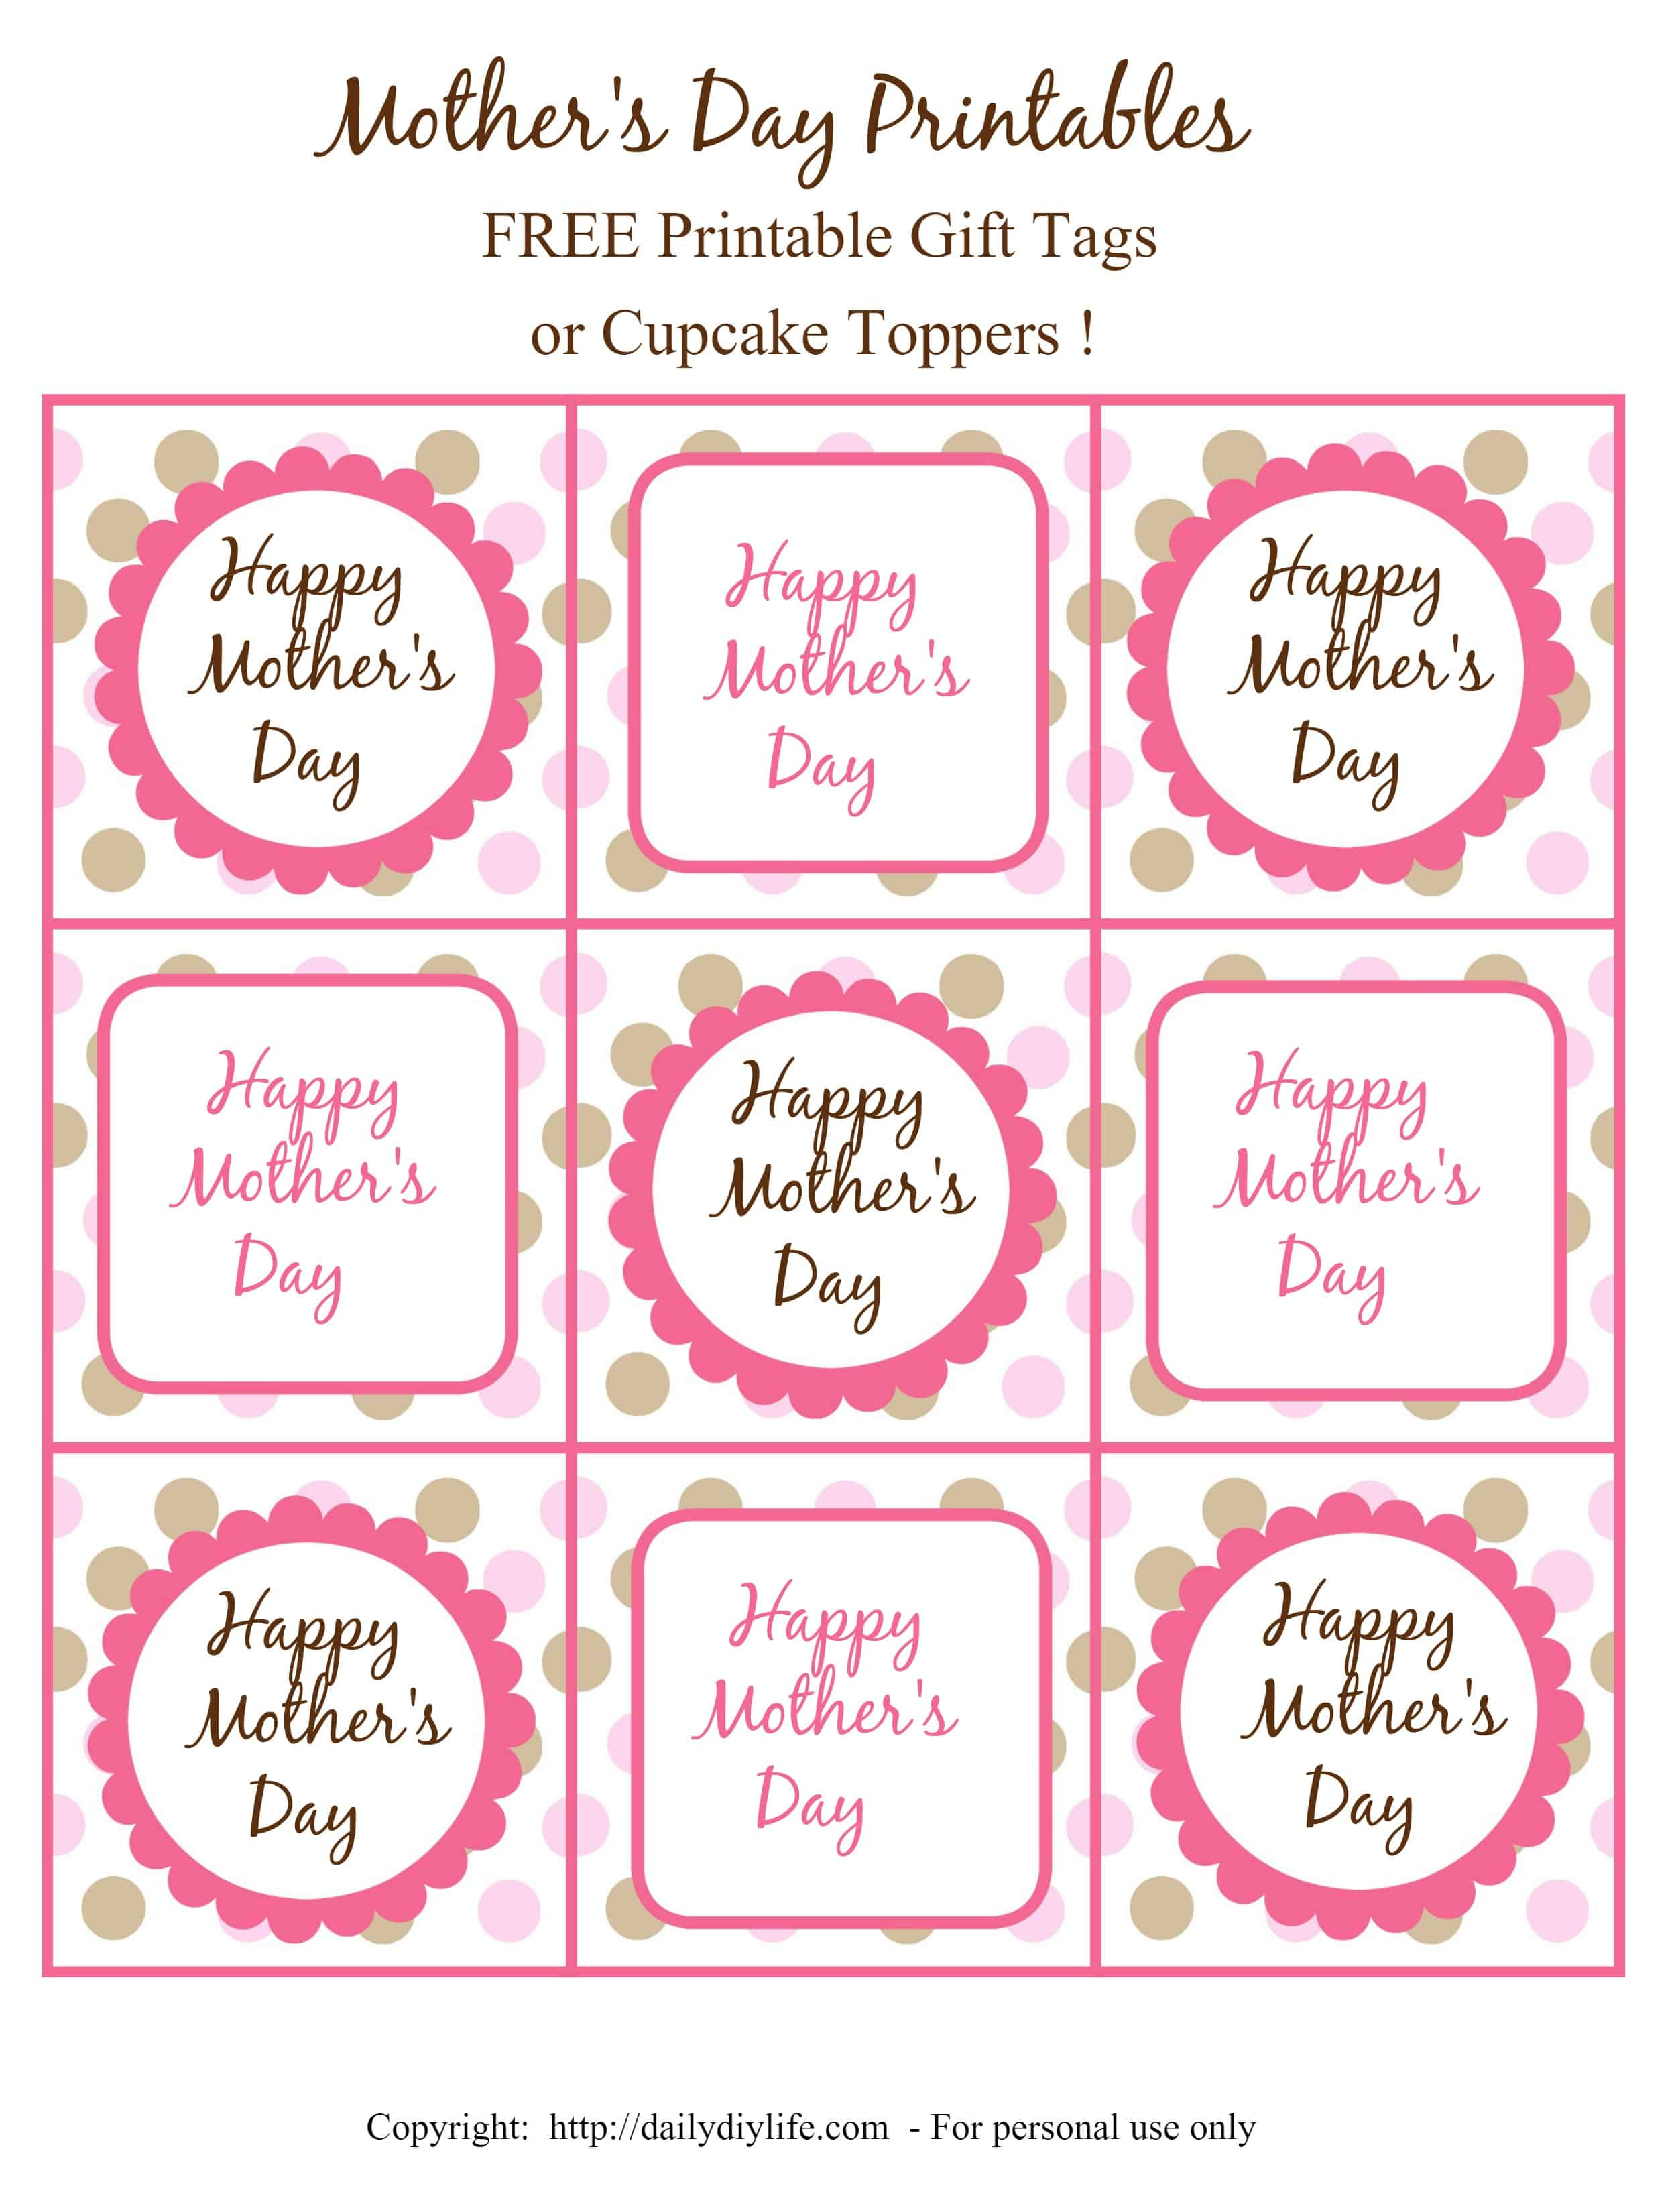 Mother S Day Free Printable T Tags Or Cupcake Toppers